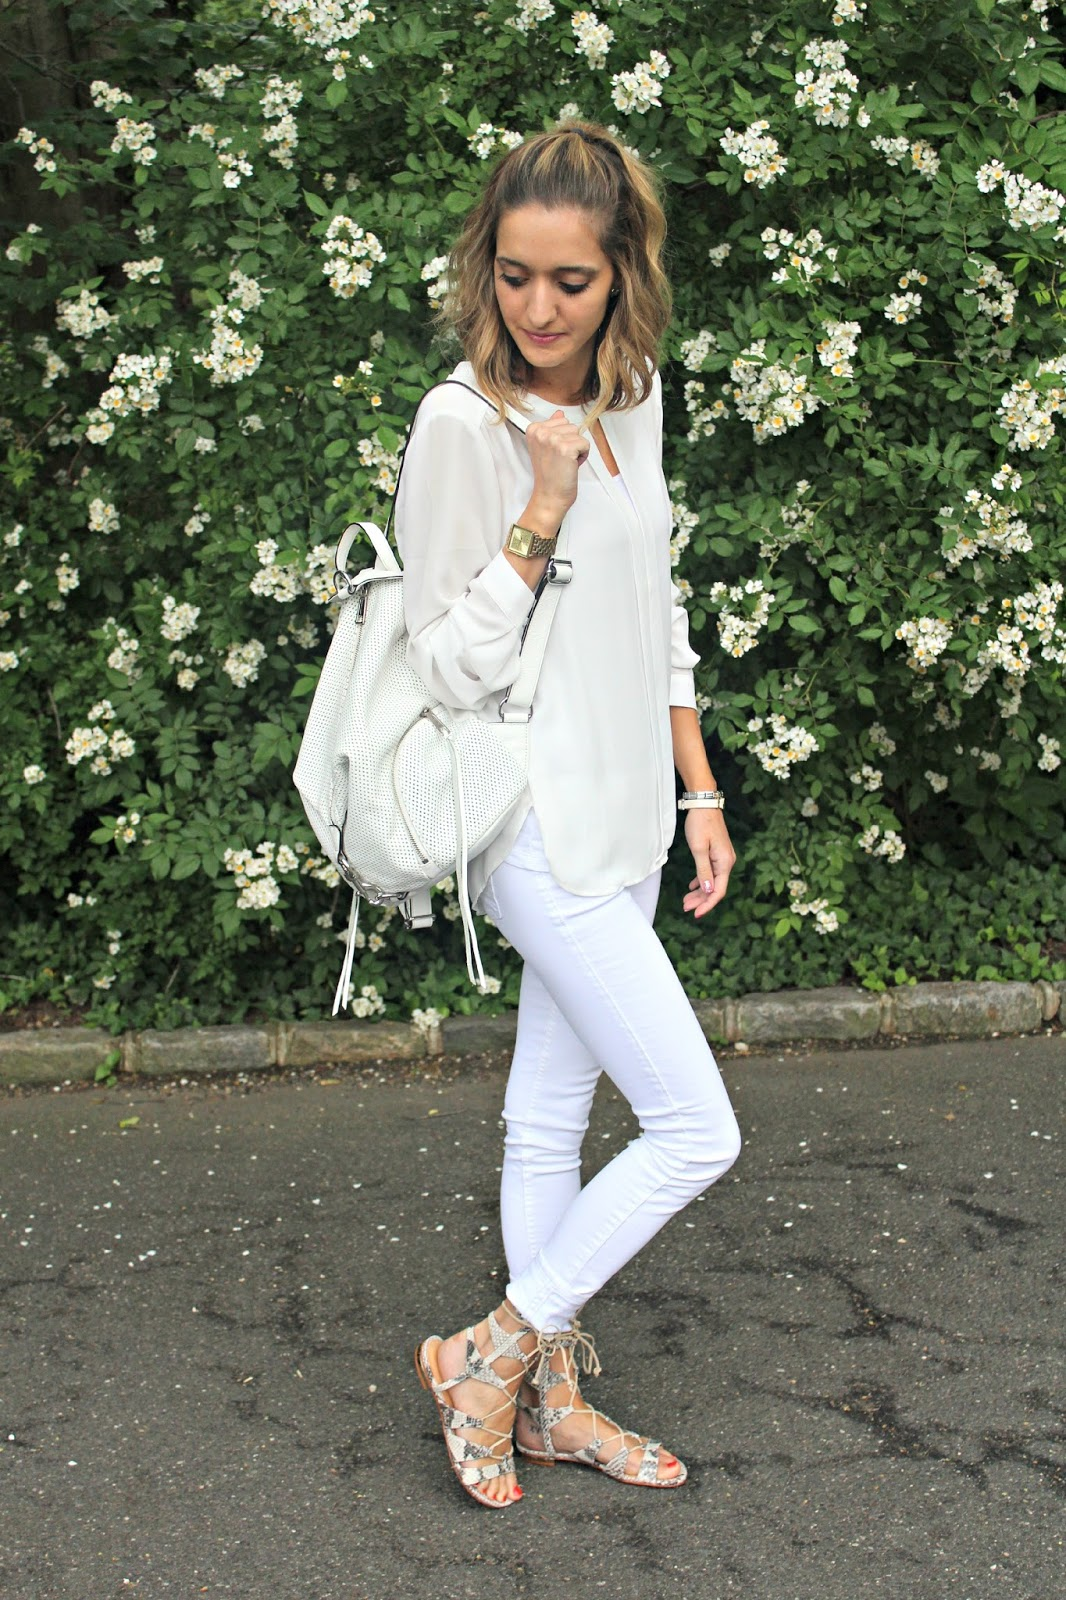 abercrombie and fitch white jeans